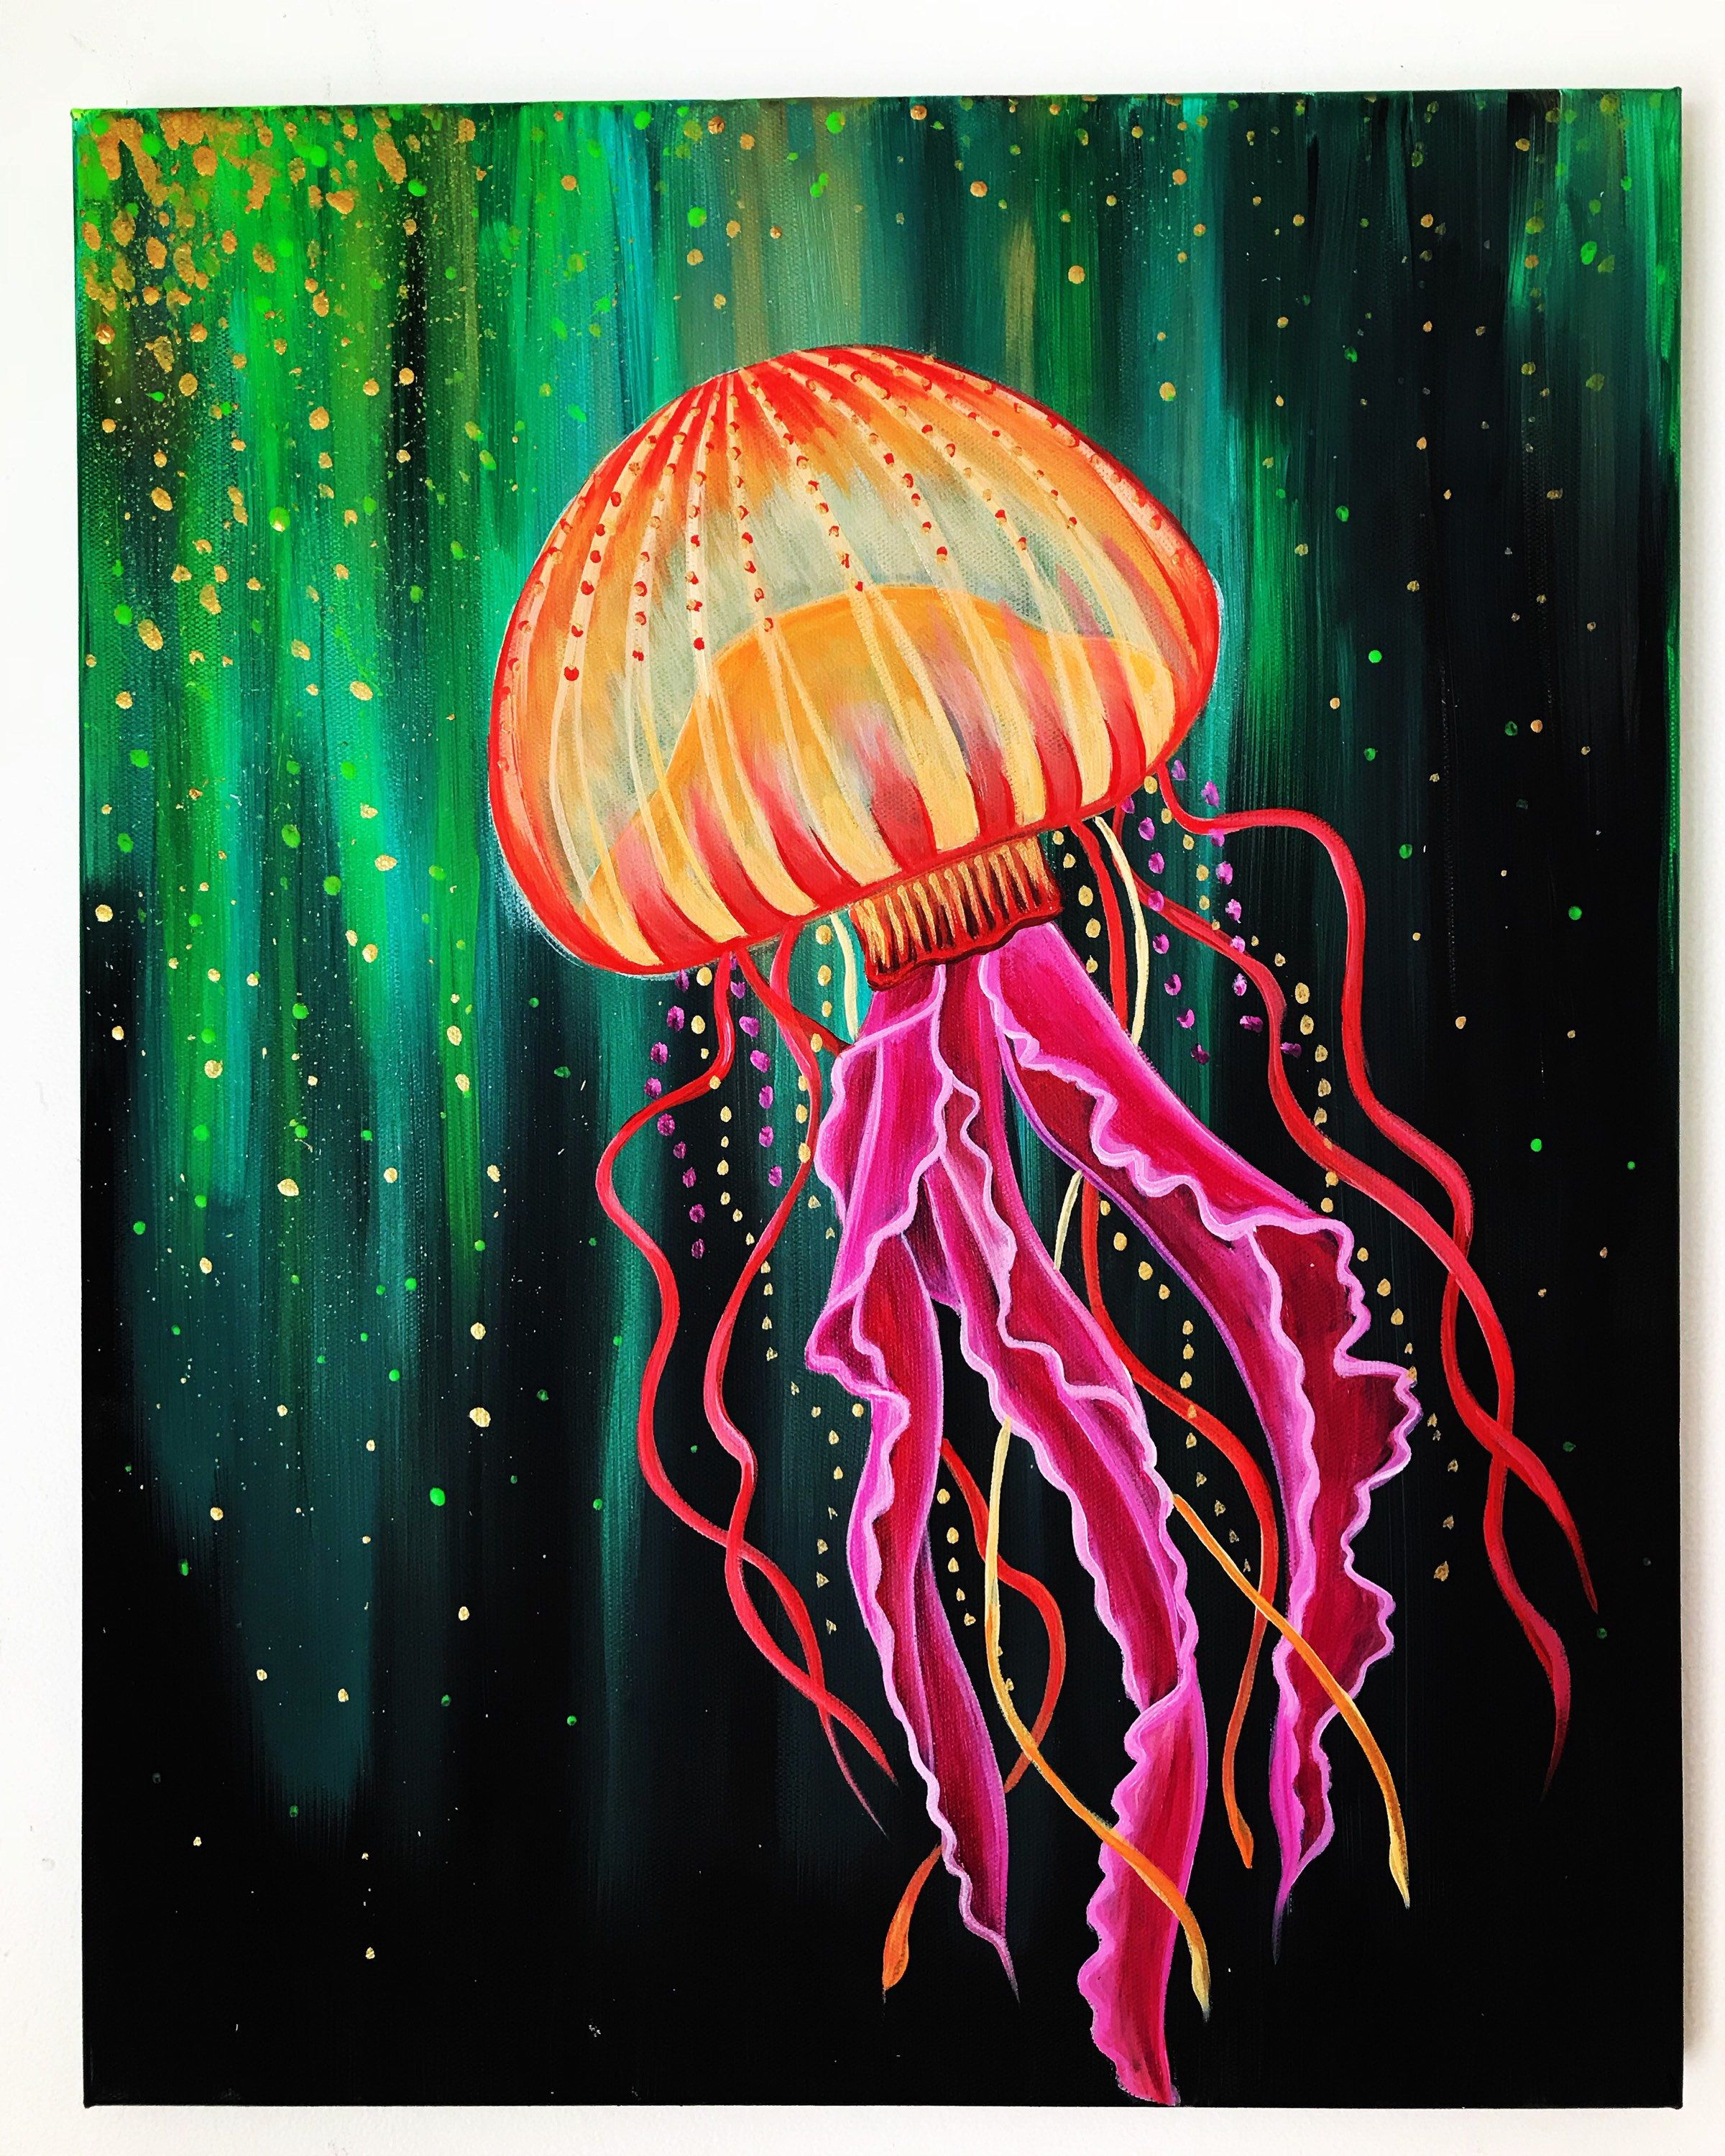 Jellyfish Etsy In 2021 Canvas Art Painting Painting Jellyfish Painting